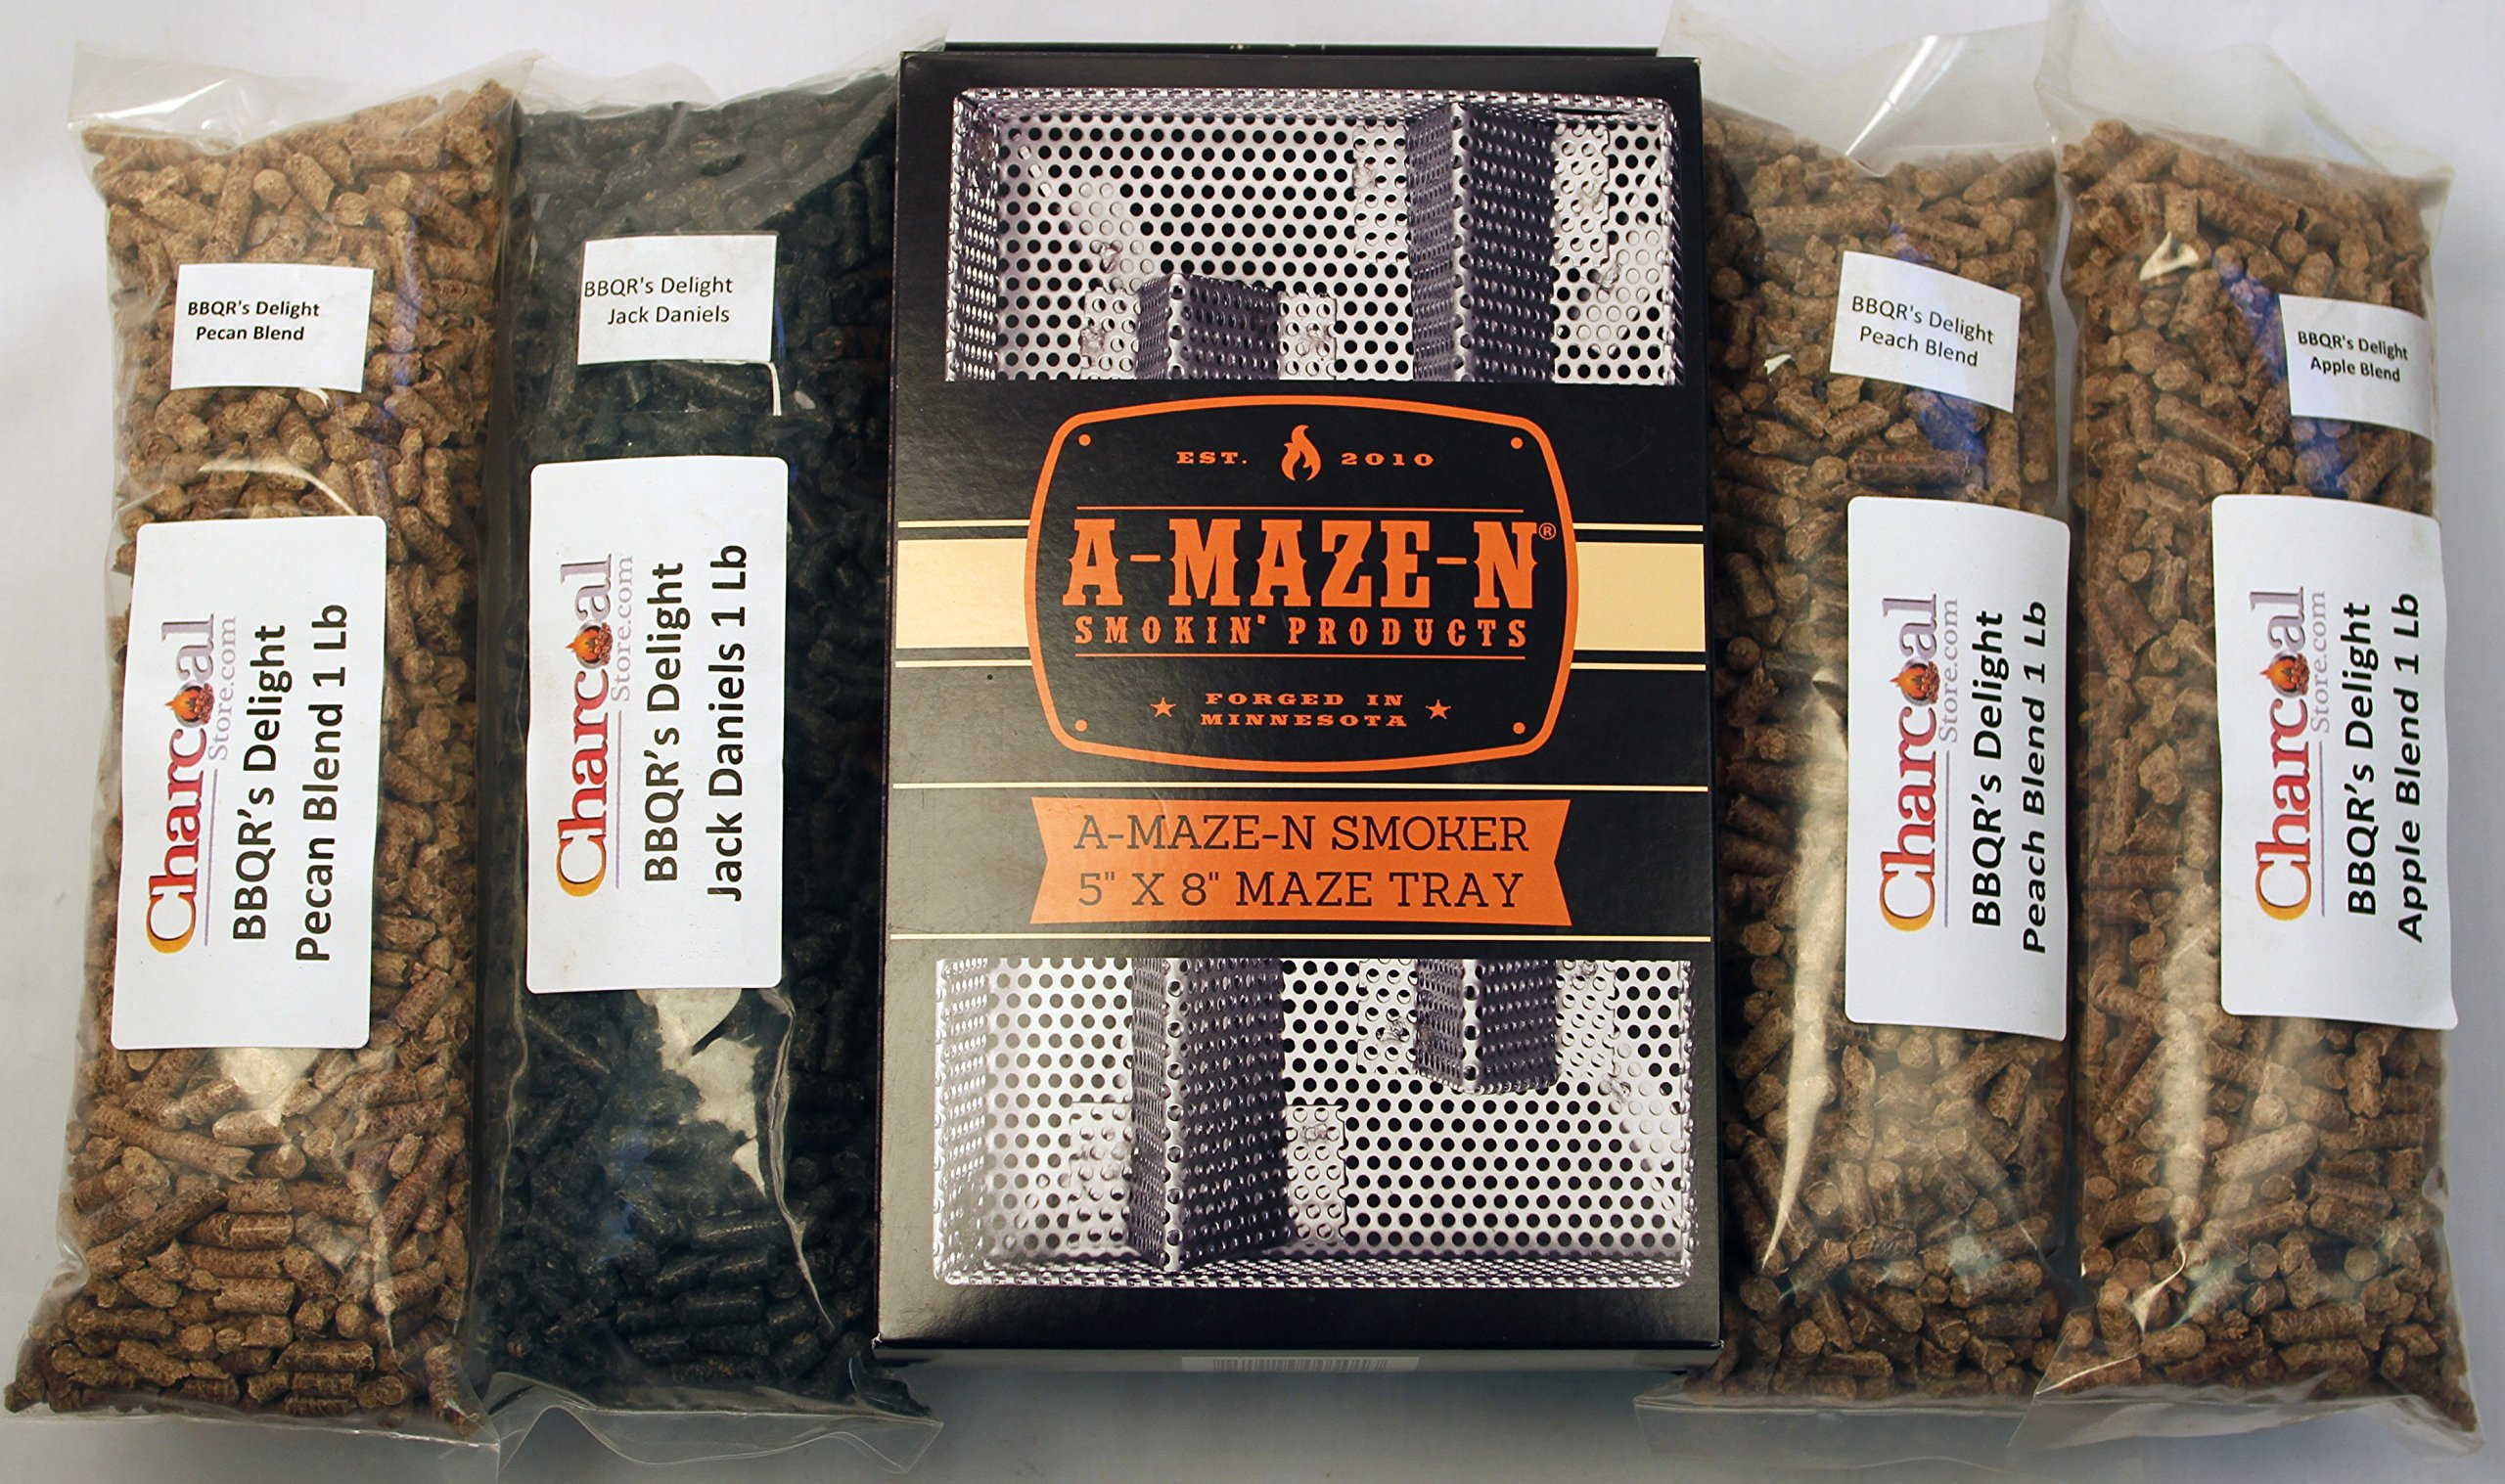 CharcoalStore A-MAZE-N Pellet Smoker 5x8 BBQR's Delight Combo Pack Includes 1 Lb Each of Jack Daniels, Peach, Apple and Pecan Pellets. by CharcoalStore